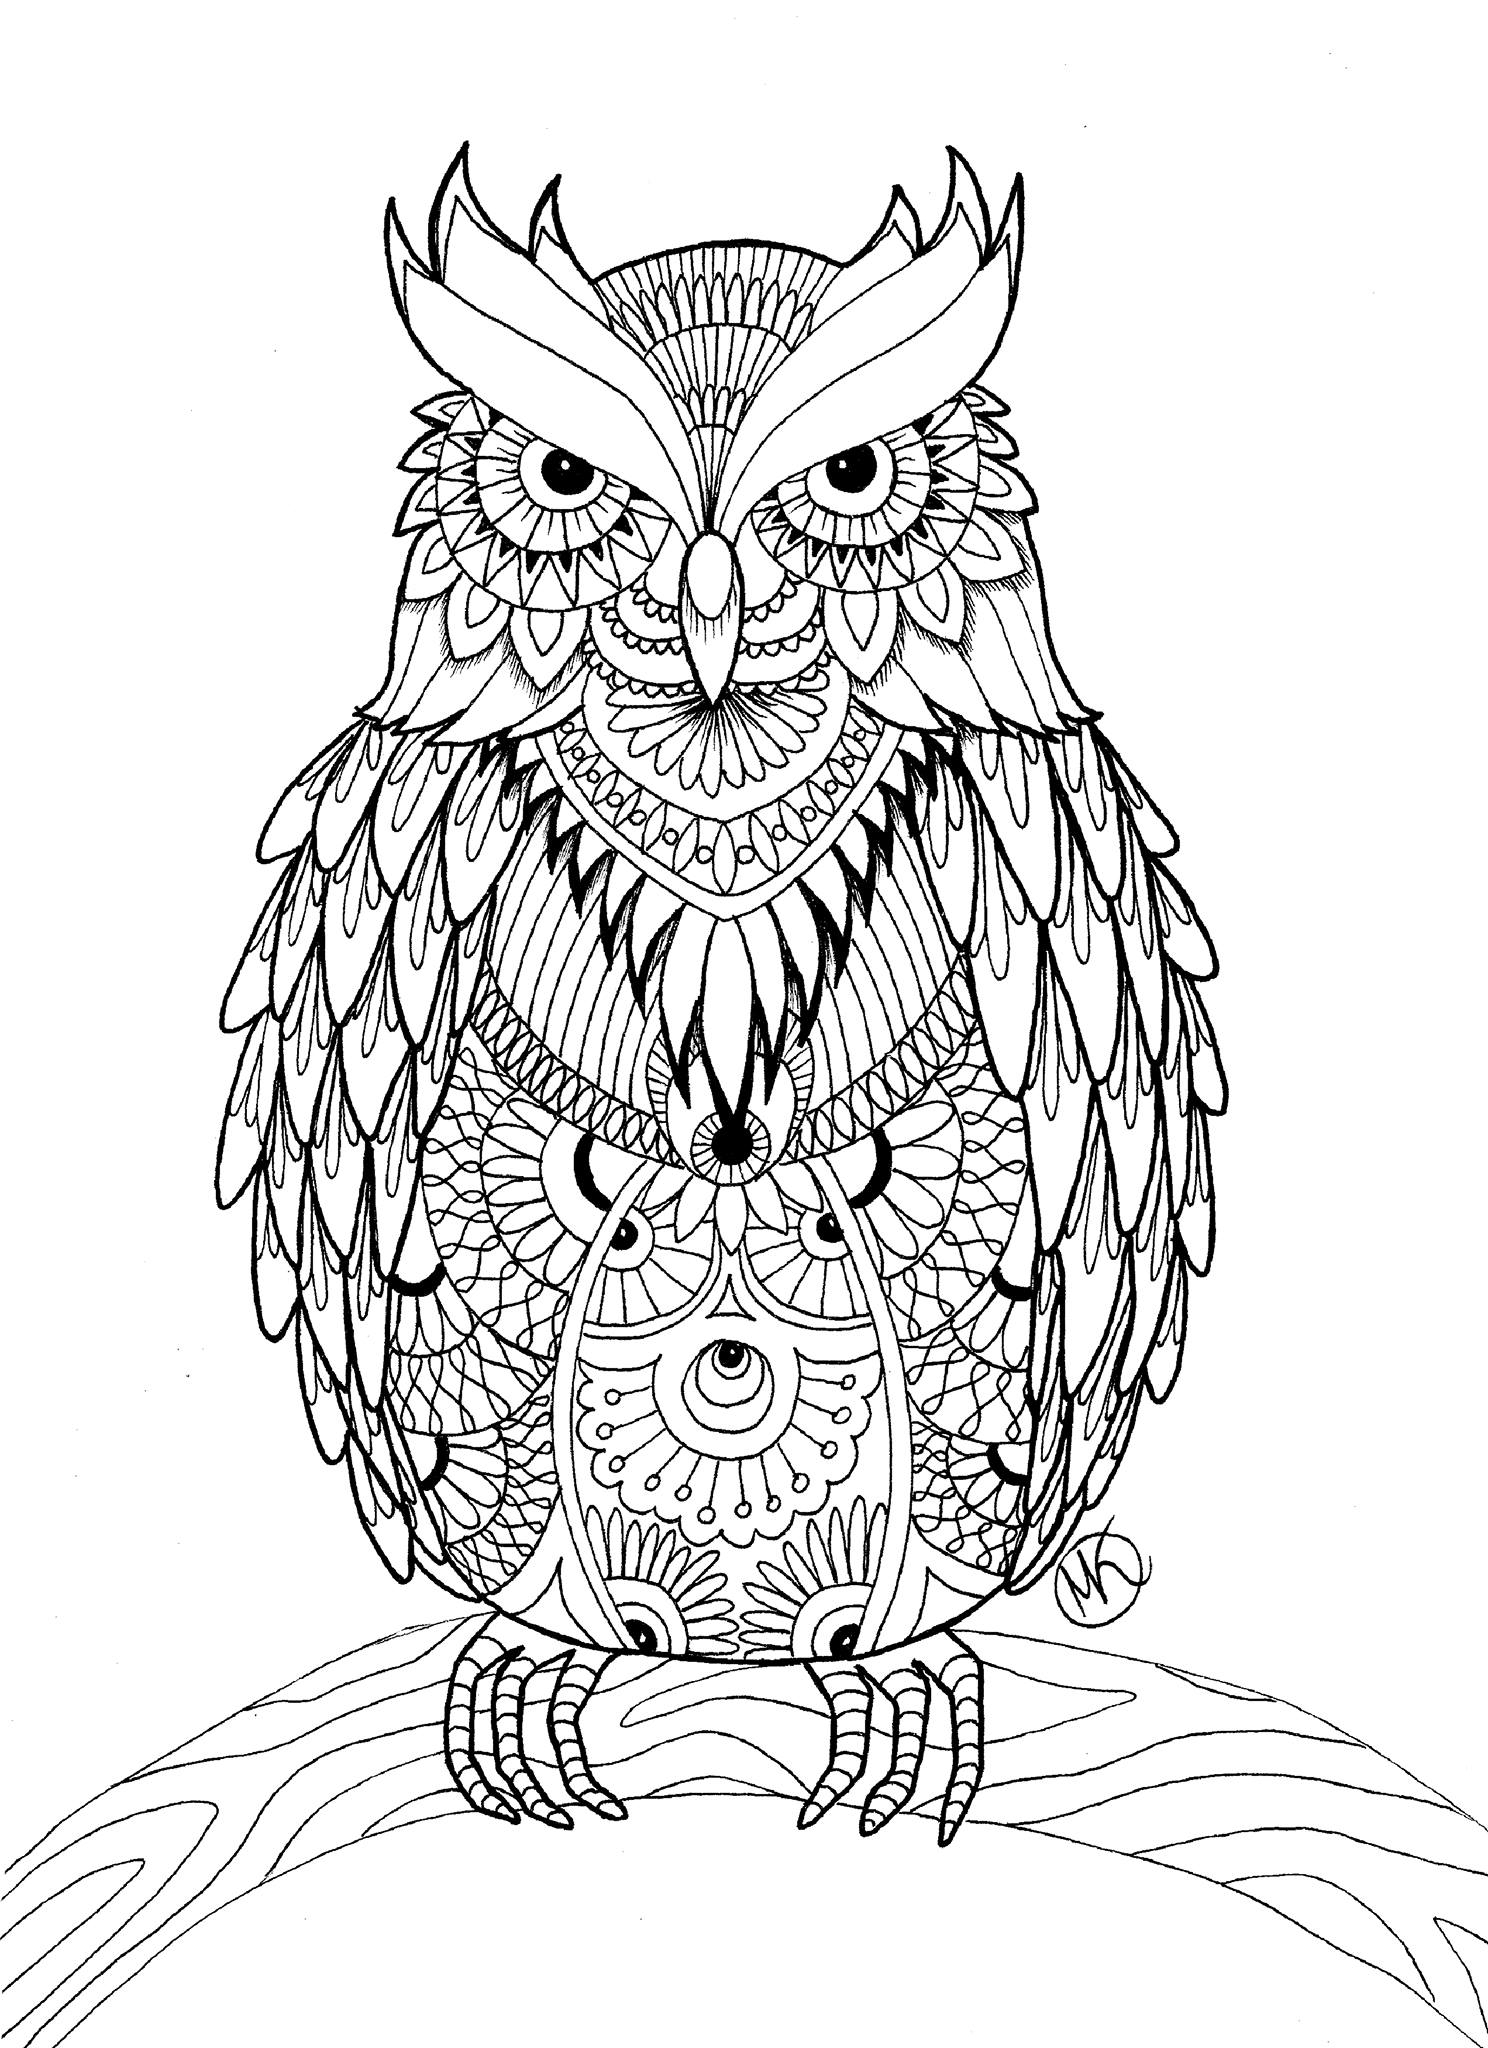 coloring pages for adults printable owl coloring pages for adults free detailed owl coloring adults printable for coloring pages